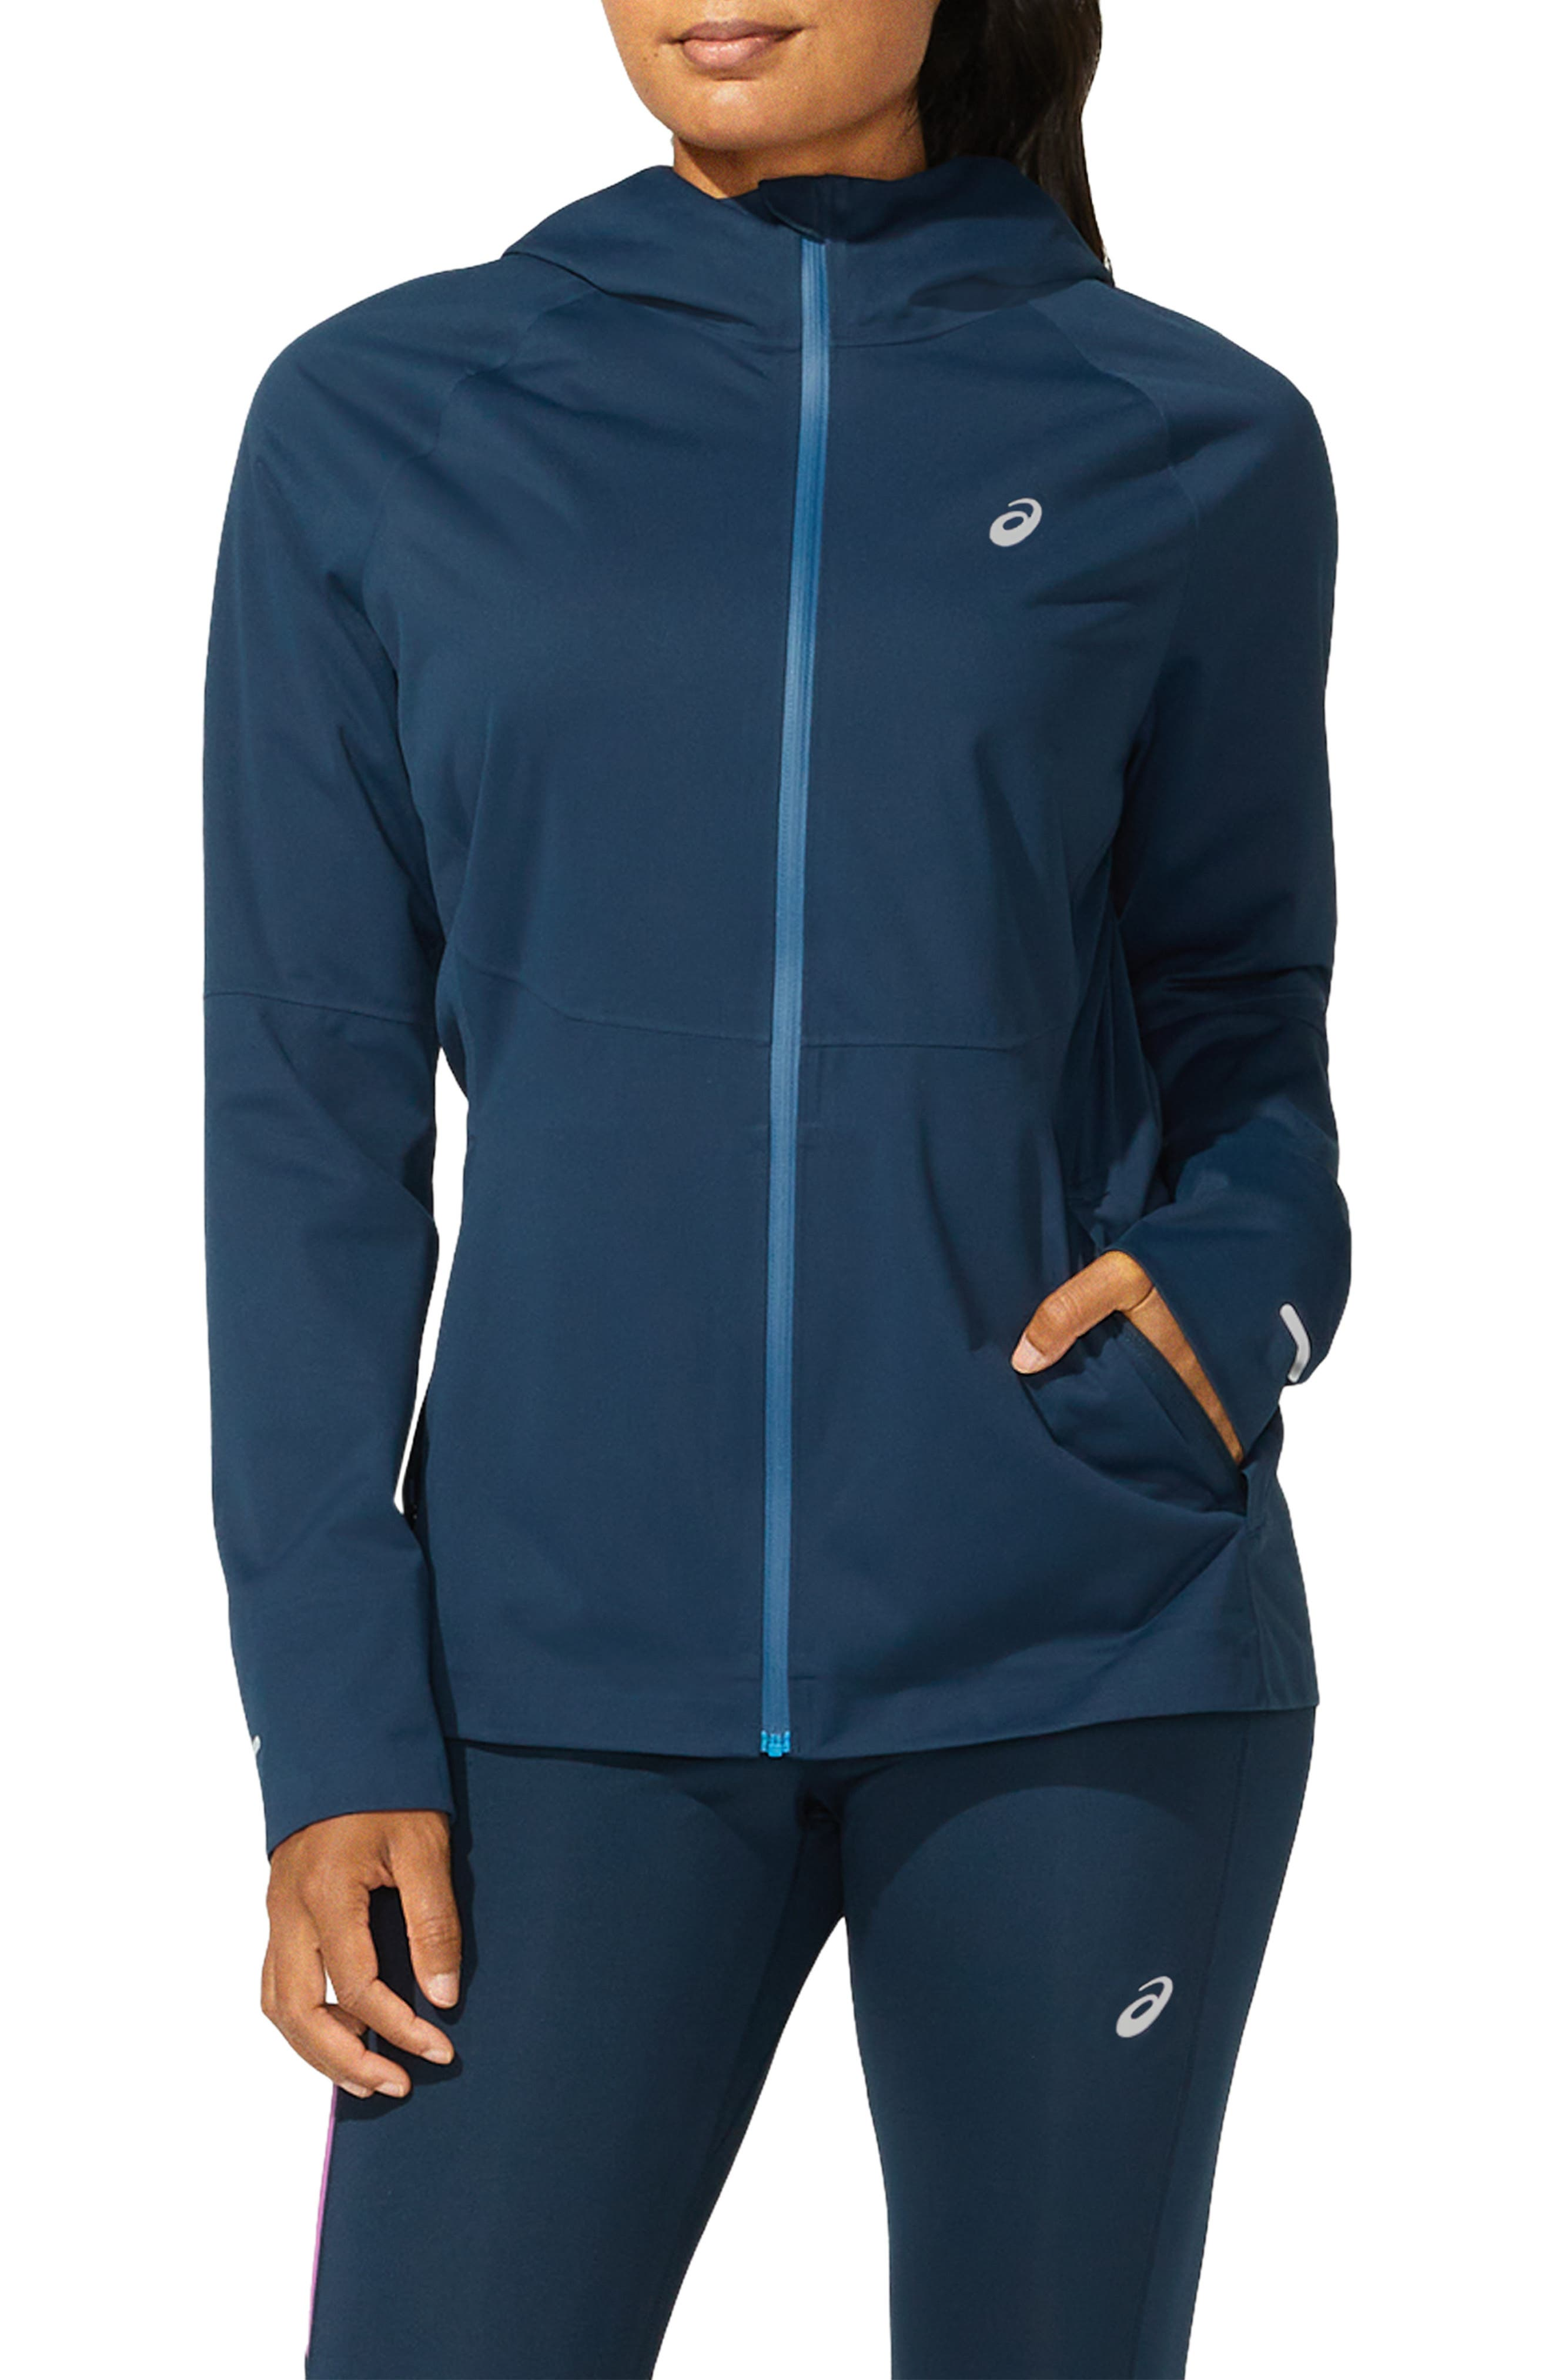 Women's Asics Accelerate Water Resistant Hooded Jacket